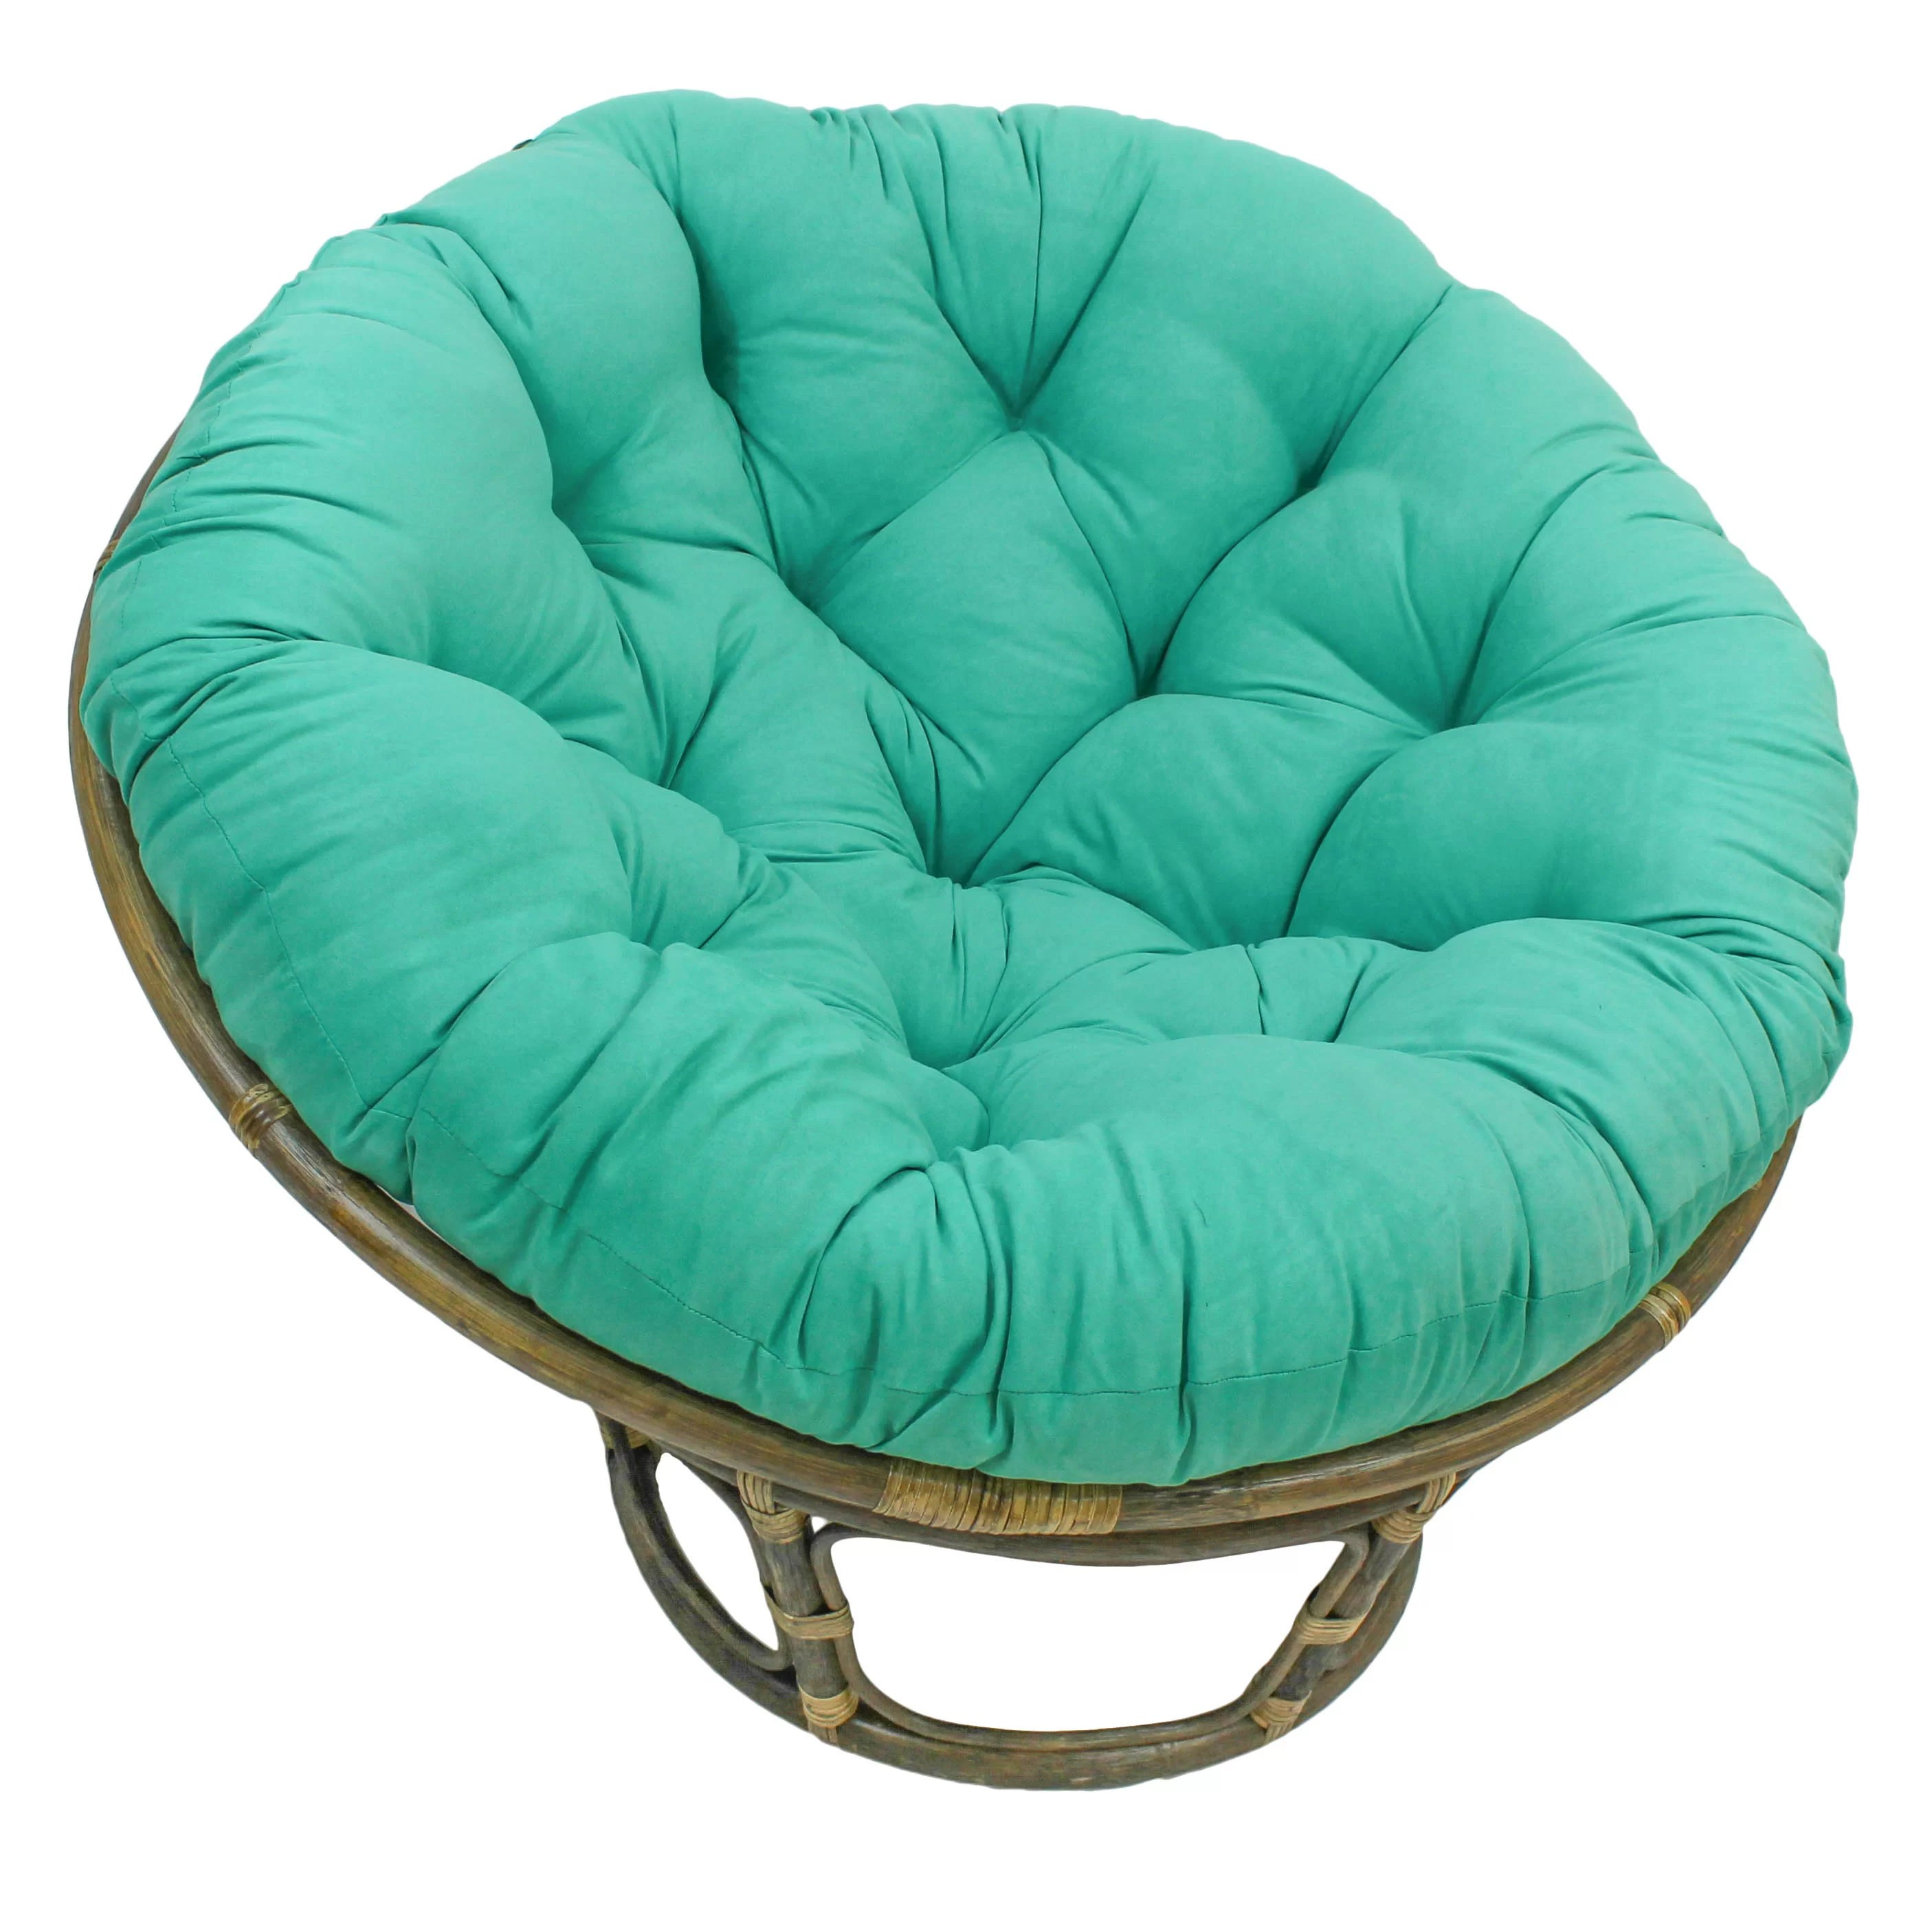 Elegant papasan chair covers new Papasan cushion cover